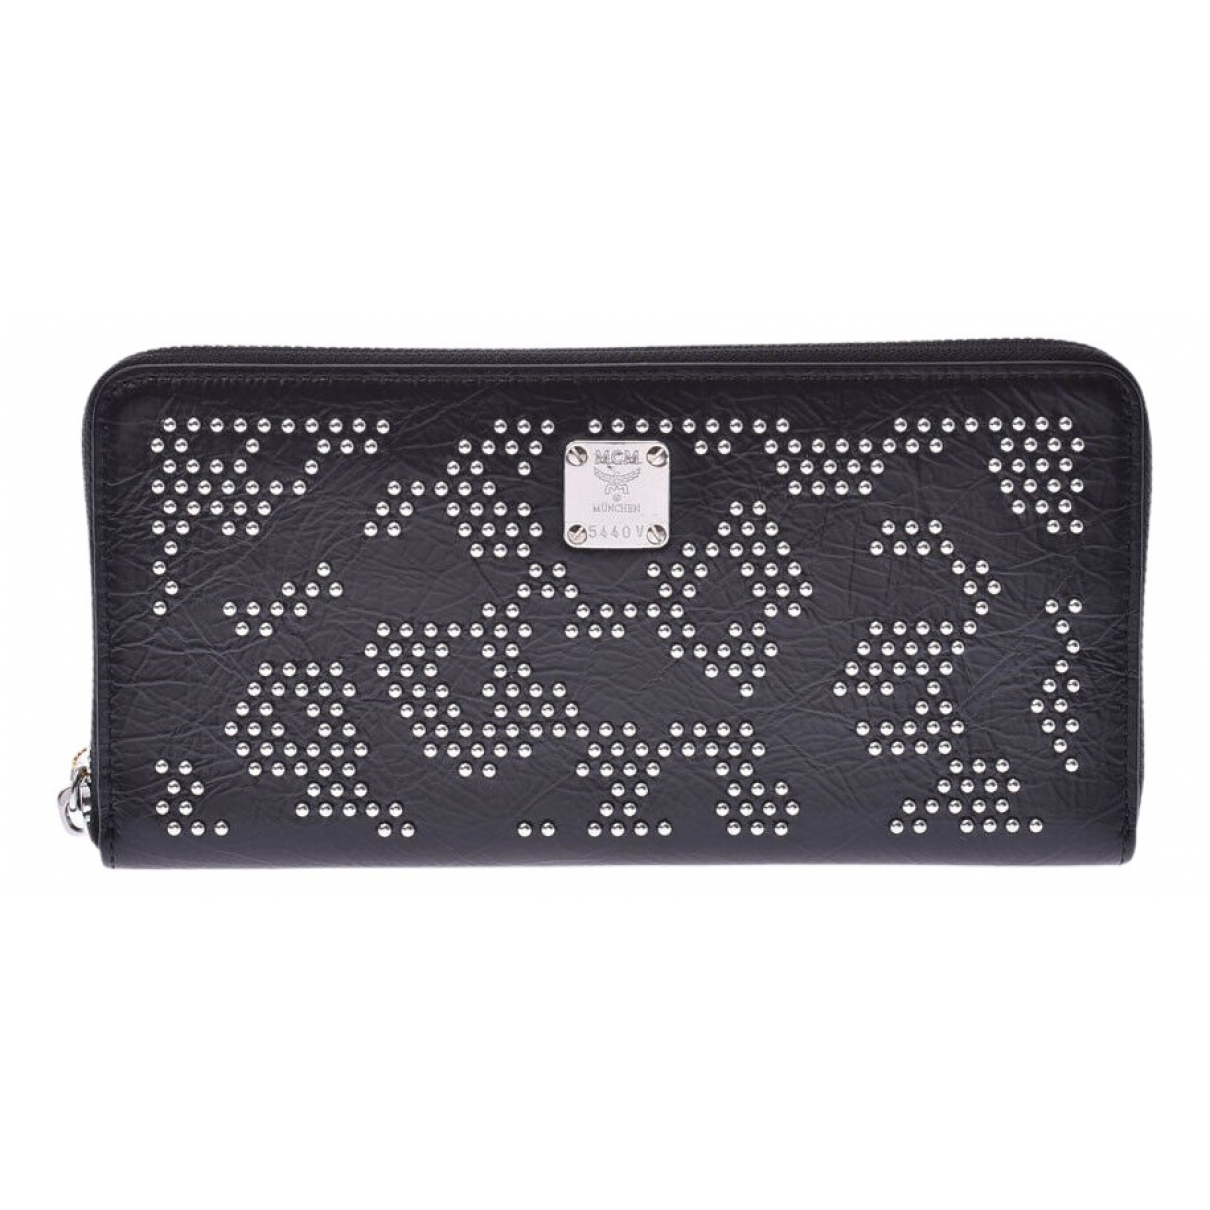 Mcm \N Black Cloth wallet for Women \N